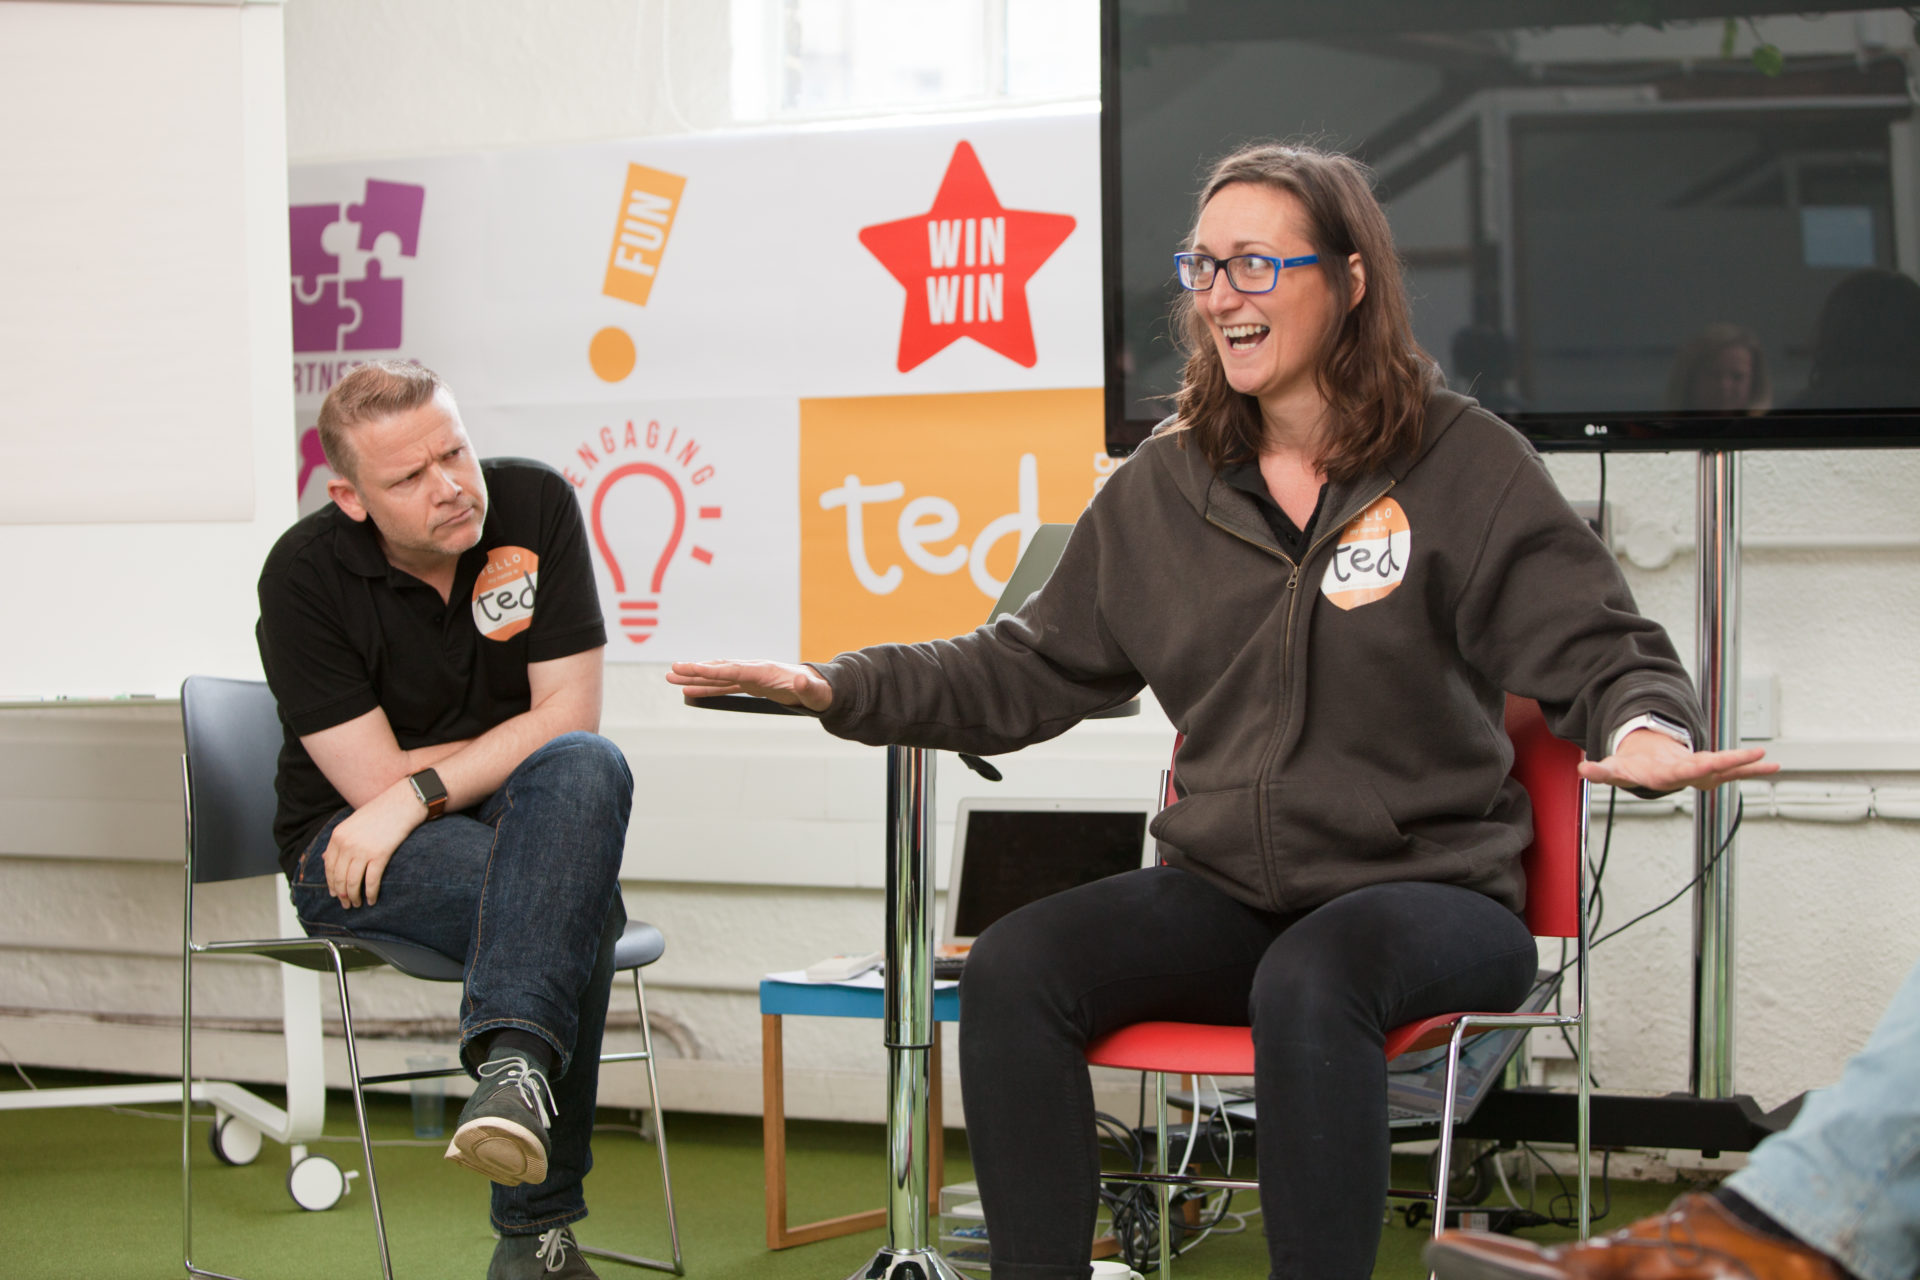 Inclusion Diversity & Equality Training ted Learning Theatre of Learning drama based training